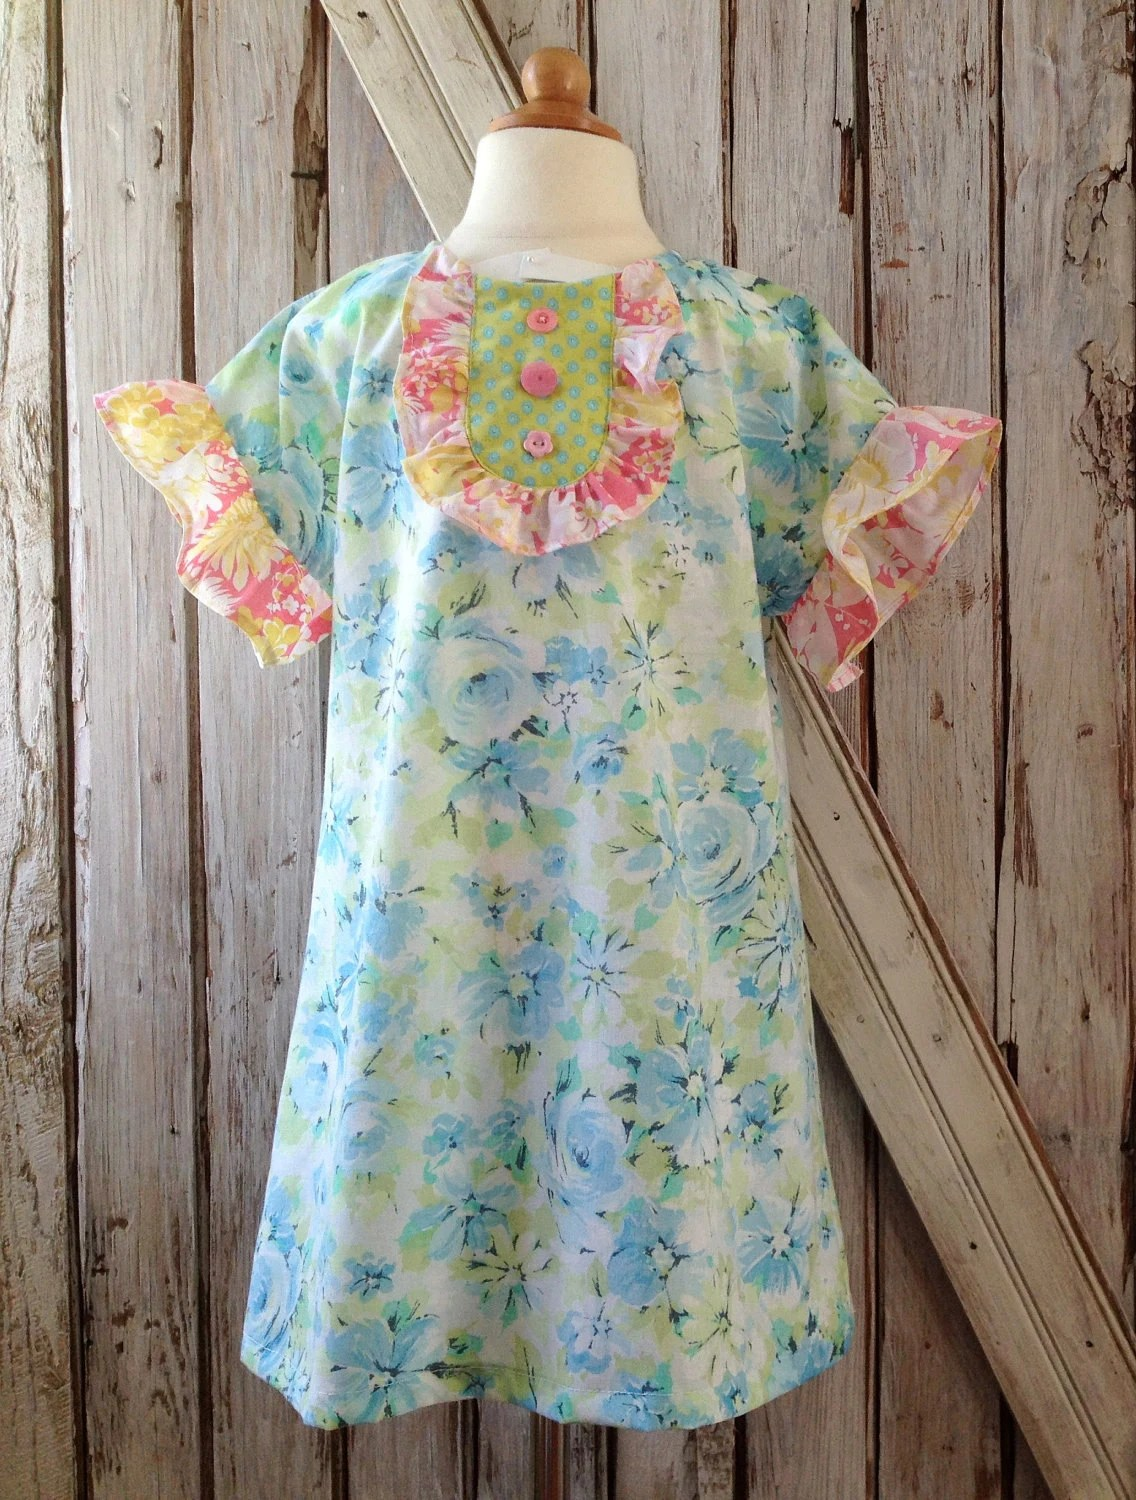 Peggy Sue - Ruffle Dress and Top Pattern - Girl's Sewing Pattern. Toddler Dress Pattern. Sizes 2 -10